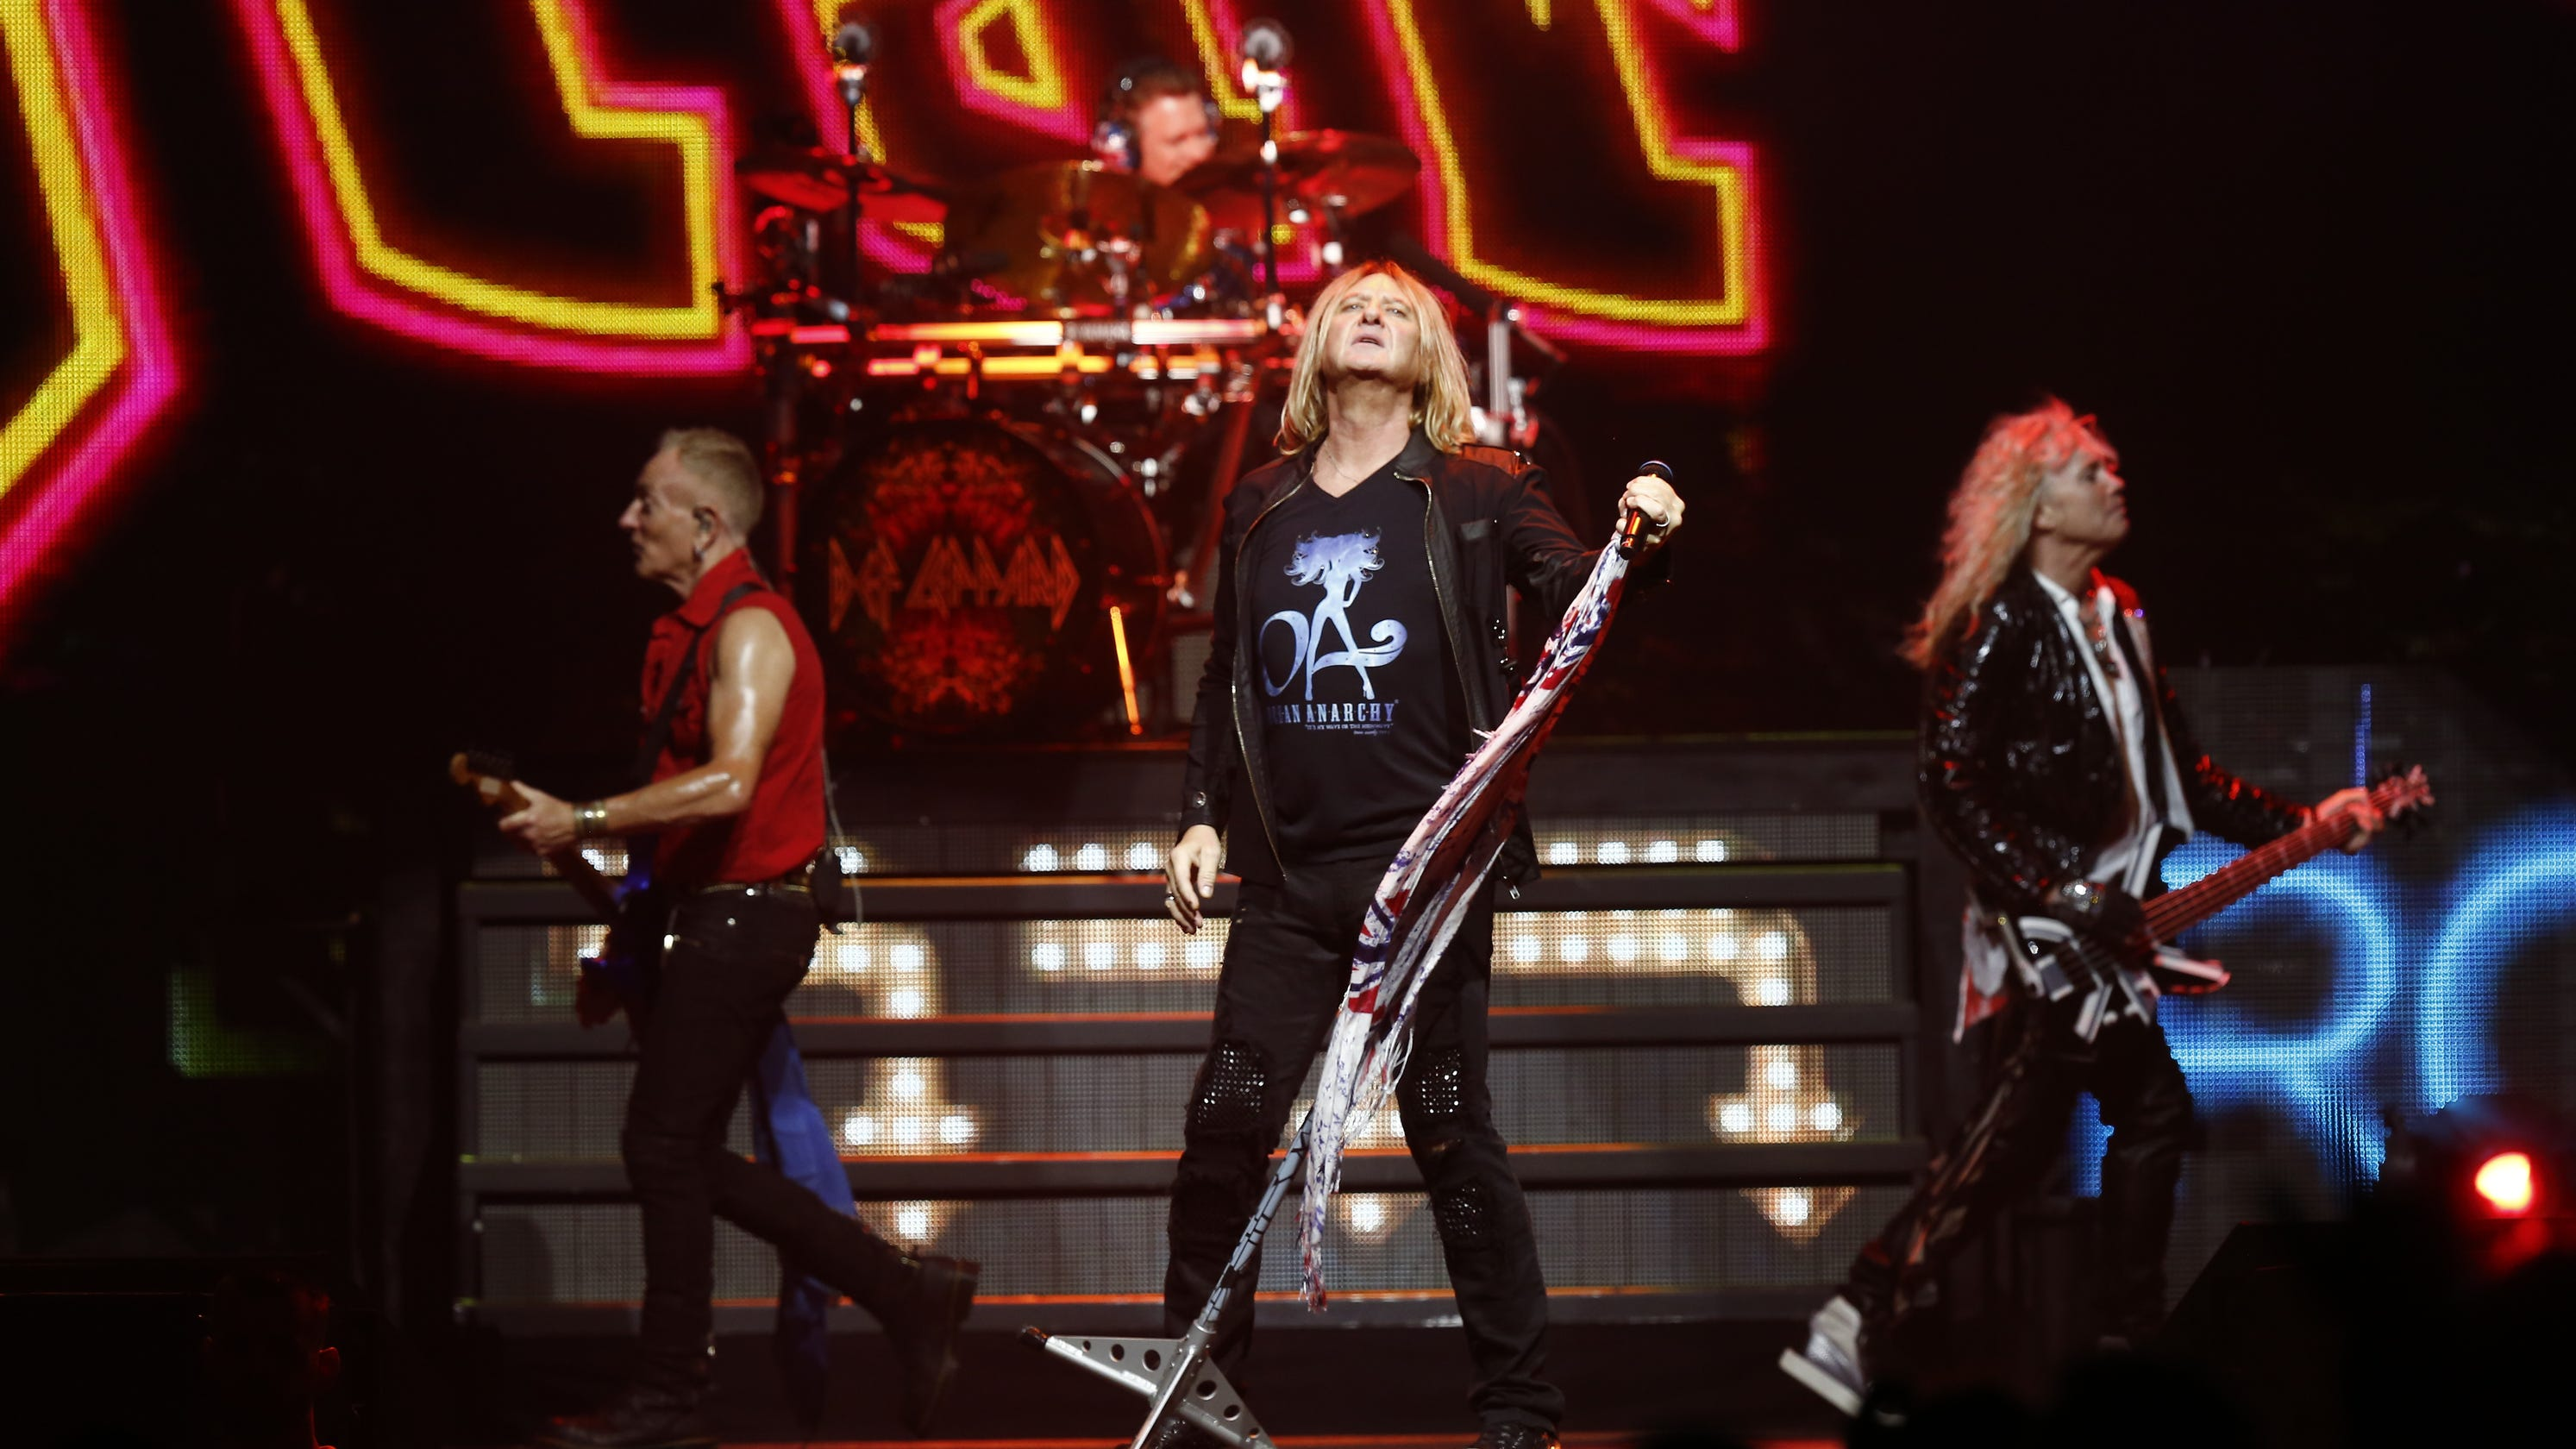 Def Leppard, ZZ Top to rock the Wells Fargo Arena stage this fall